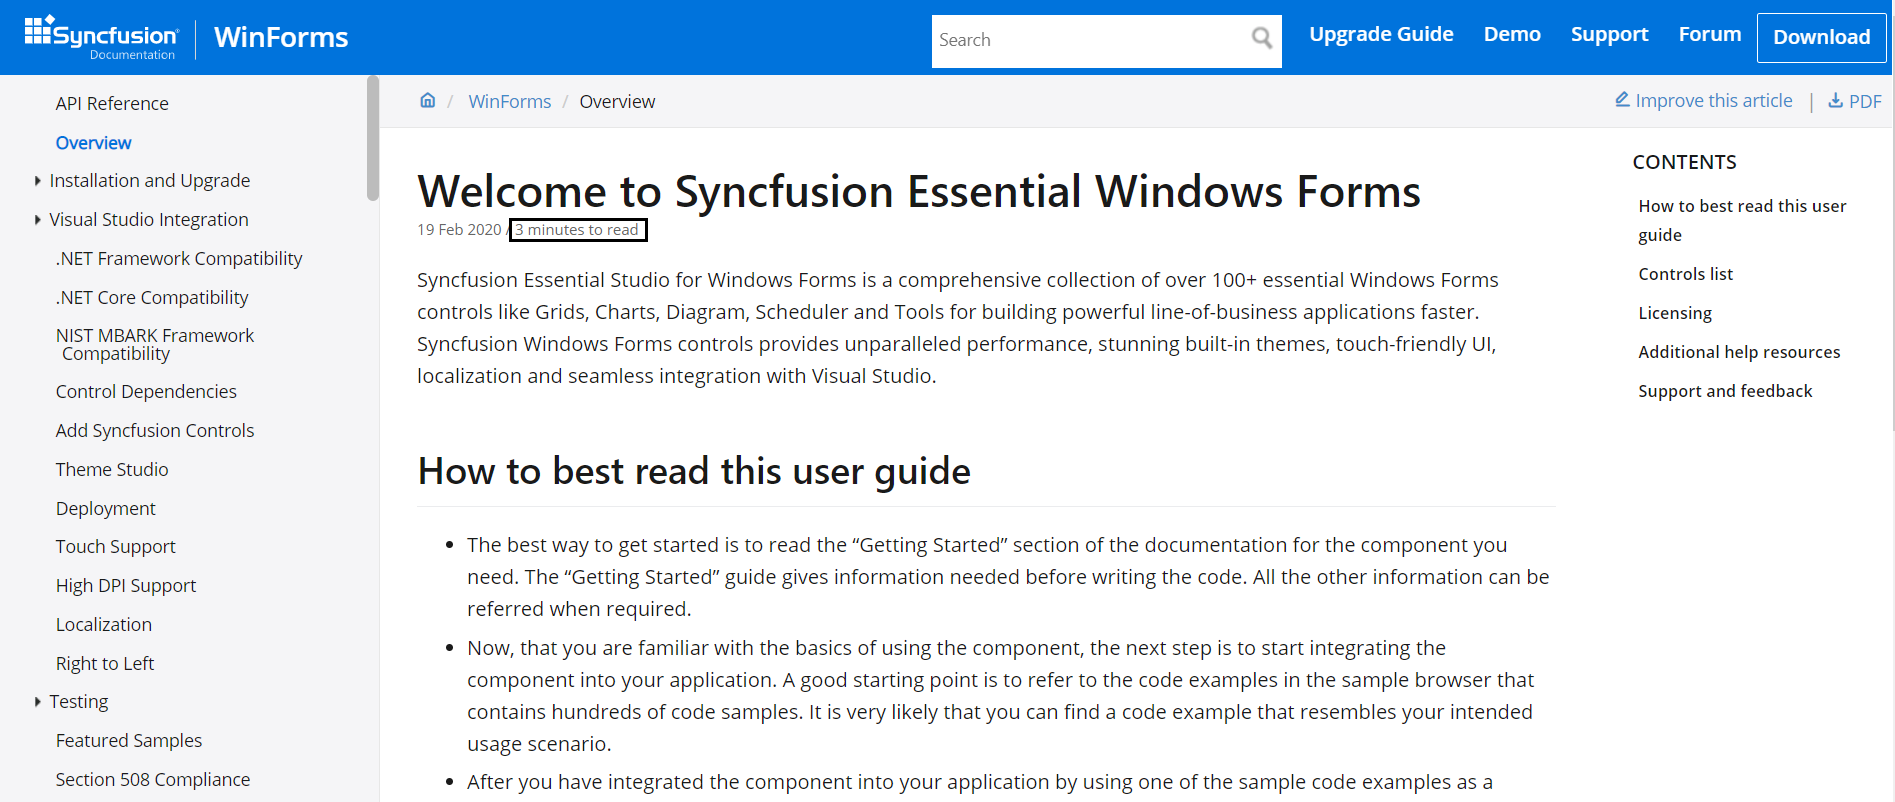 Time to read the article in Syncfusion UG documentation